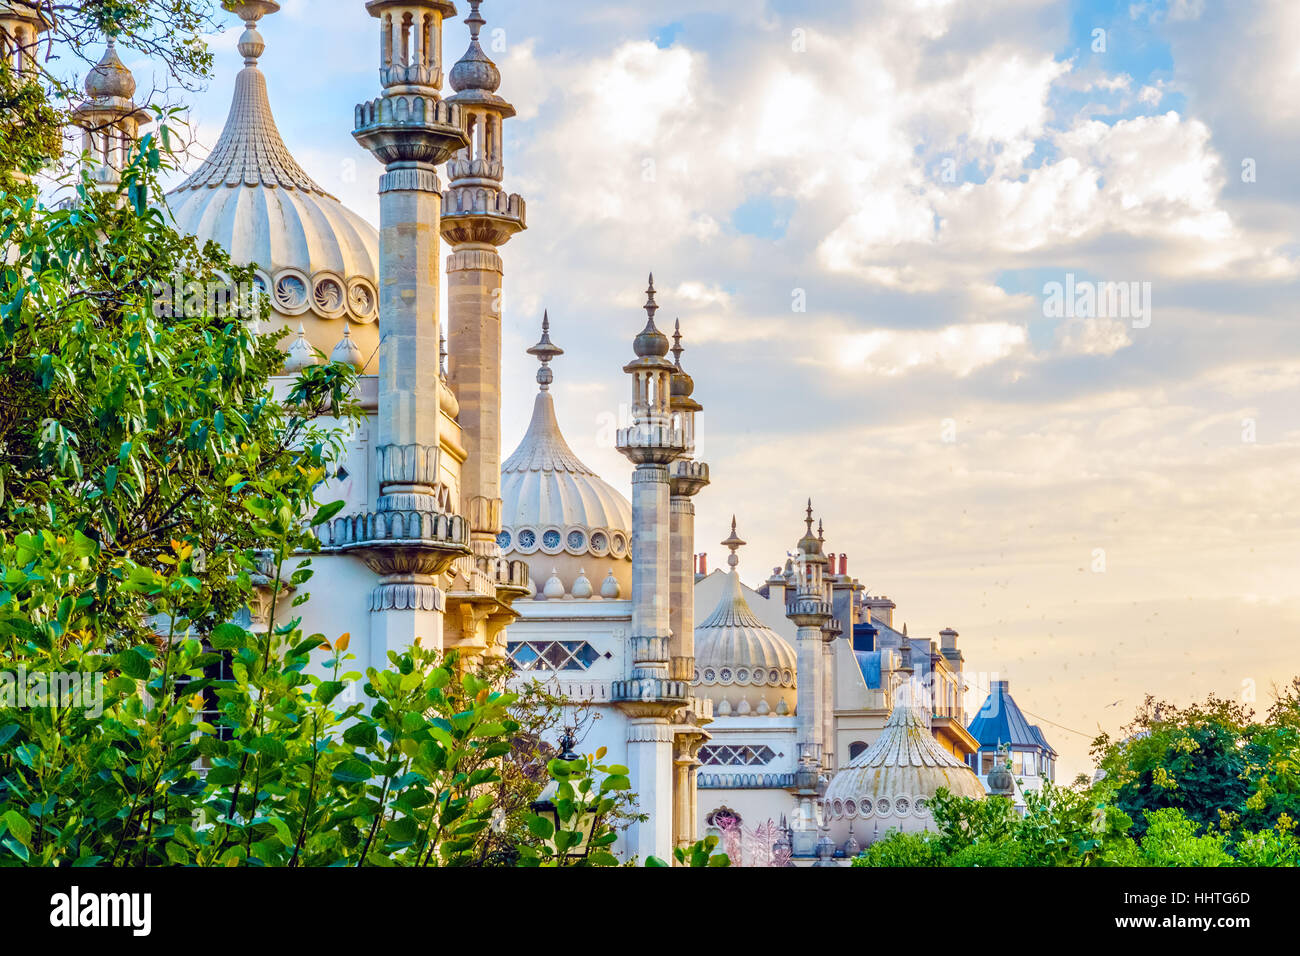 Royal Pavilion in Brighton, England - Stock Image